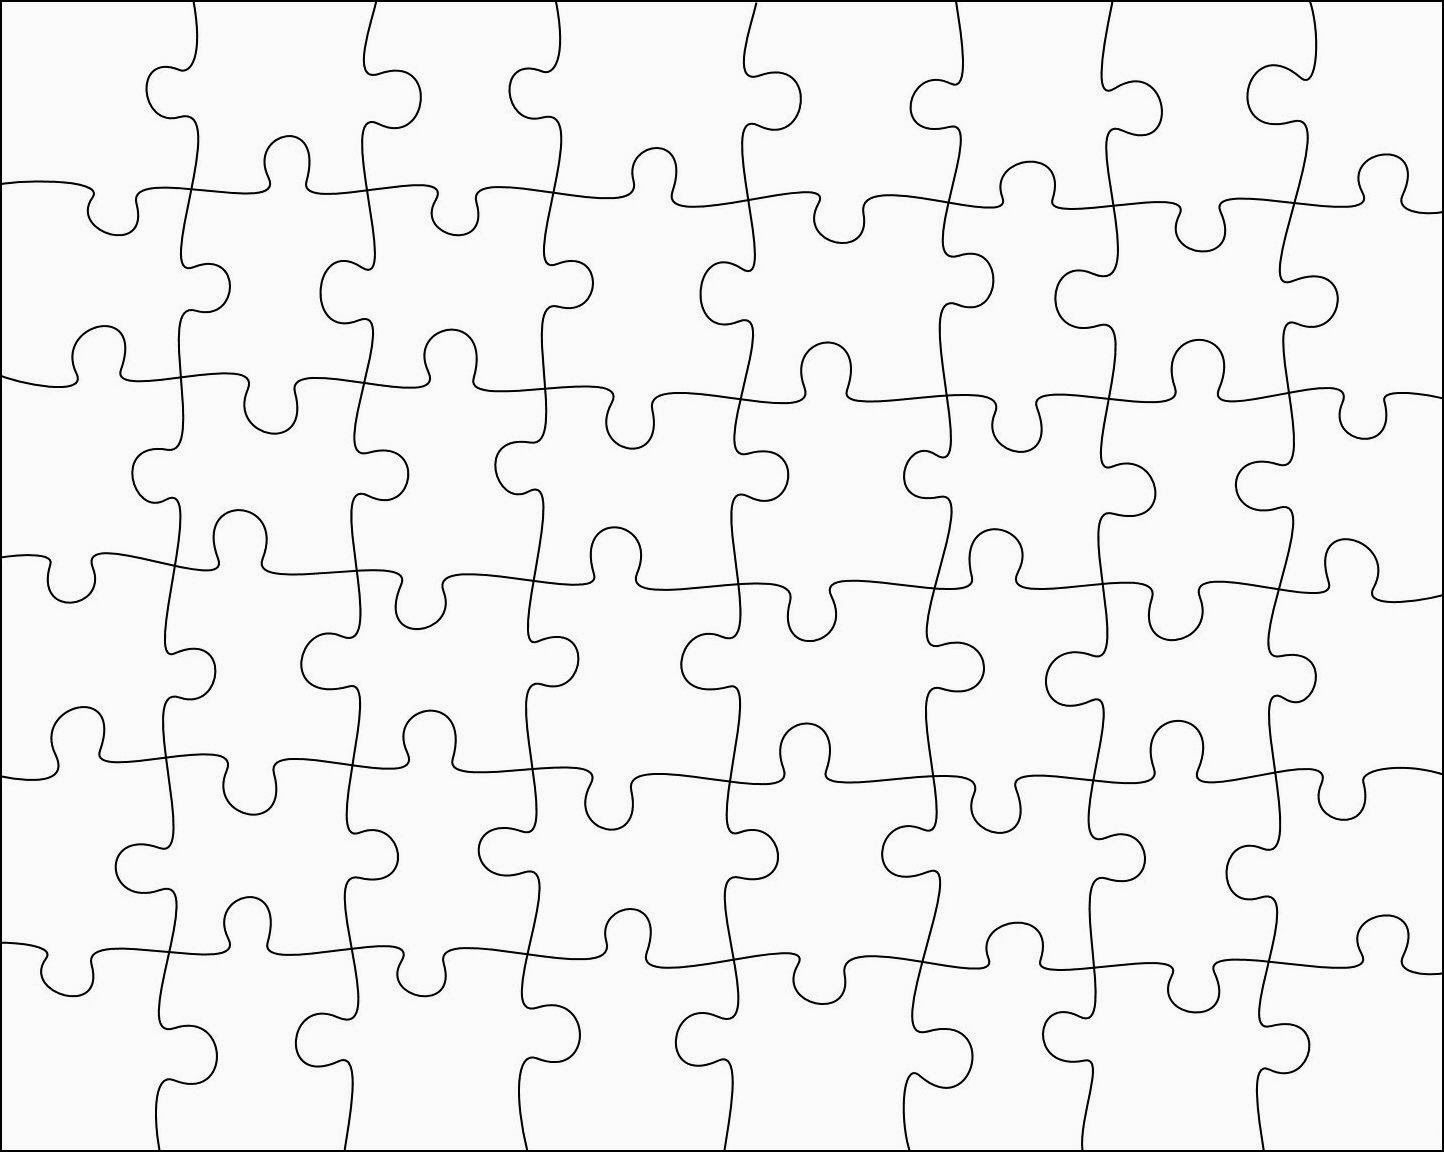 Puzzle Mural | Hyla's | Scroll Saw Patterns Free, Puzzle Piece - Printable 8X10 Puzzle Template